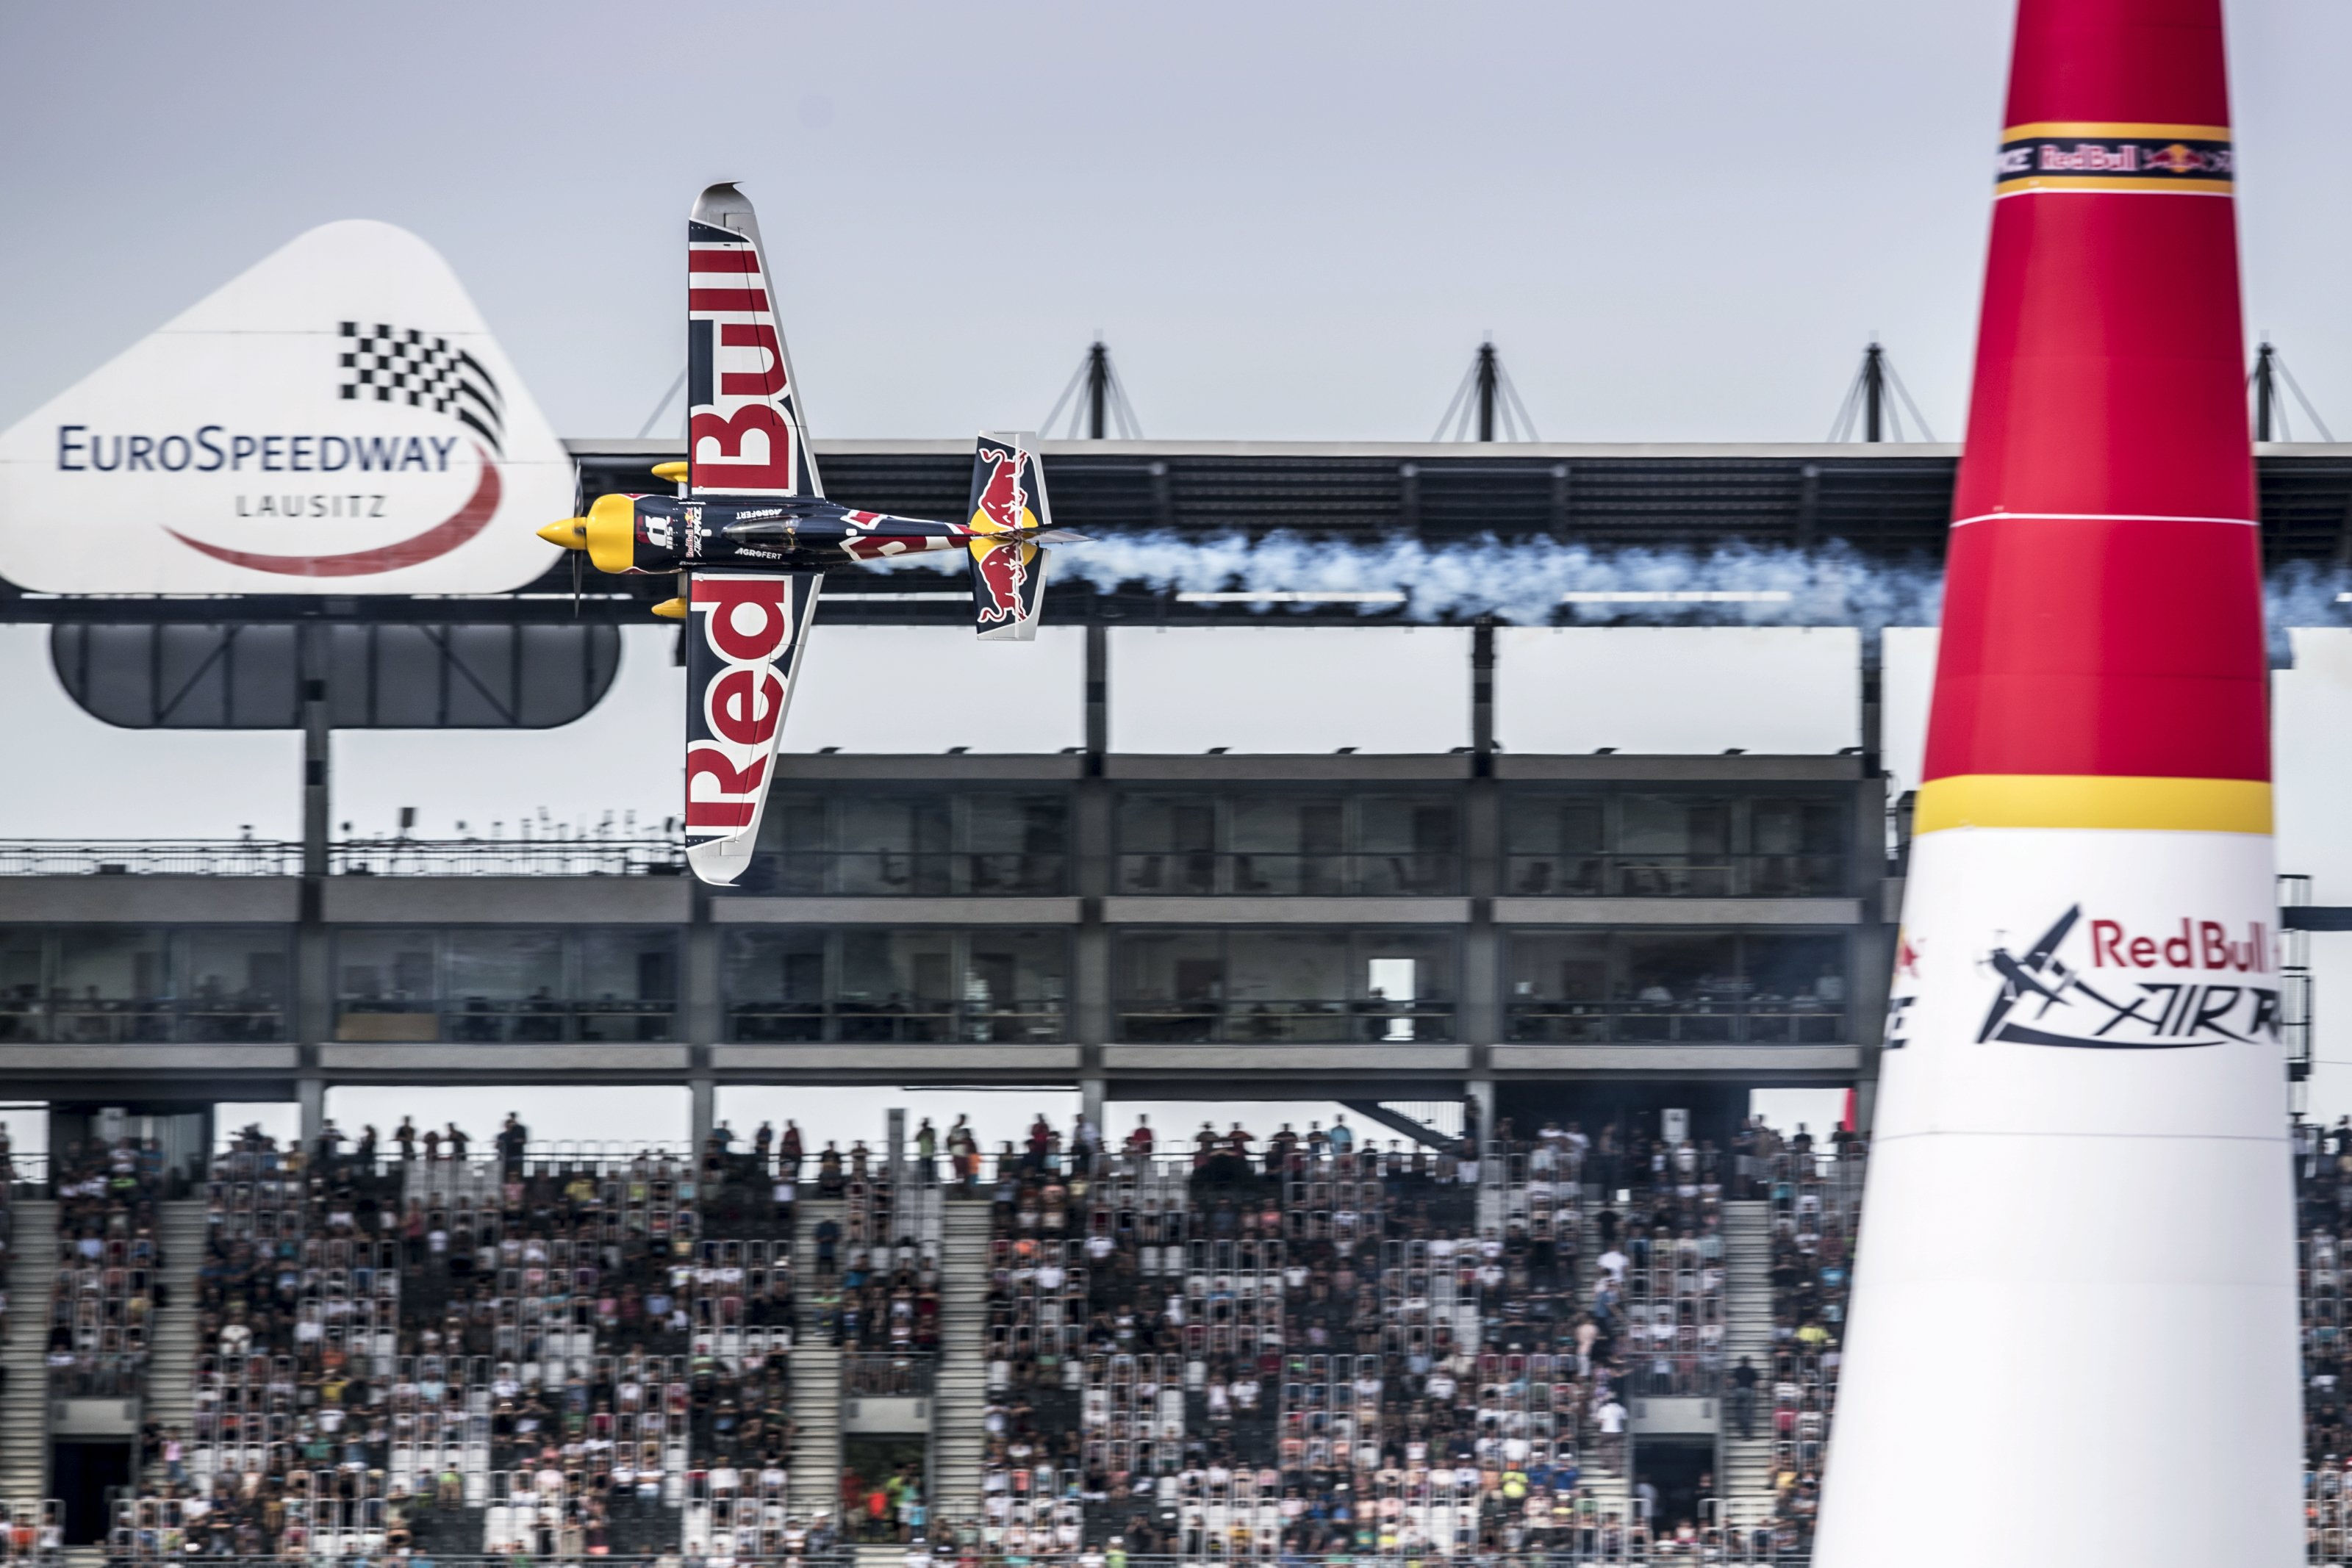 Hot On The Heels Of Porto Red Bull Air Race Lausitz Takes Off 16 17